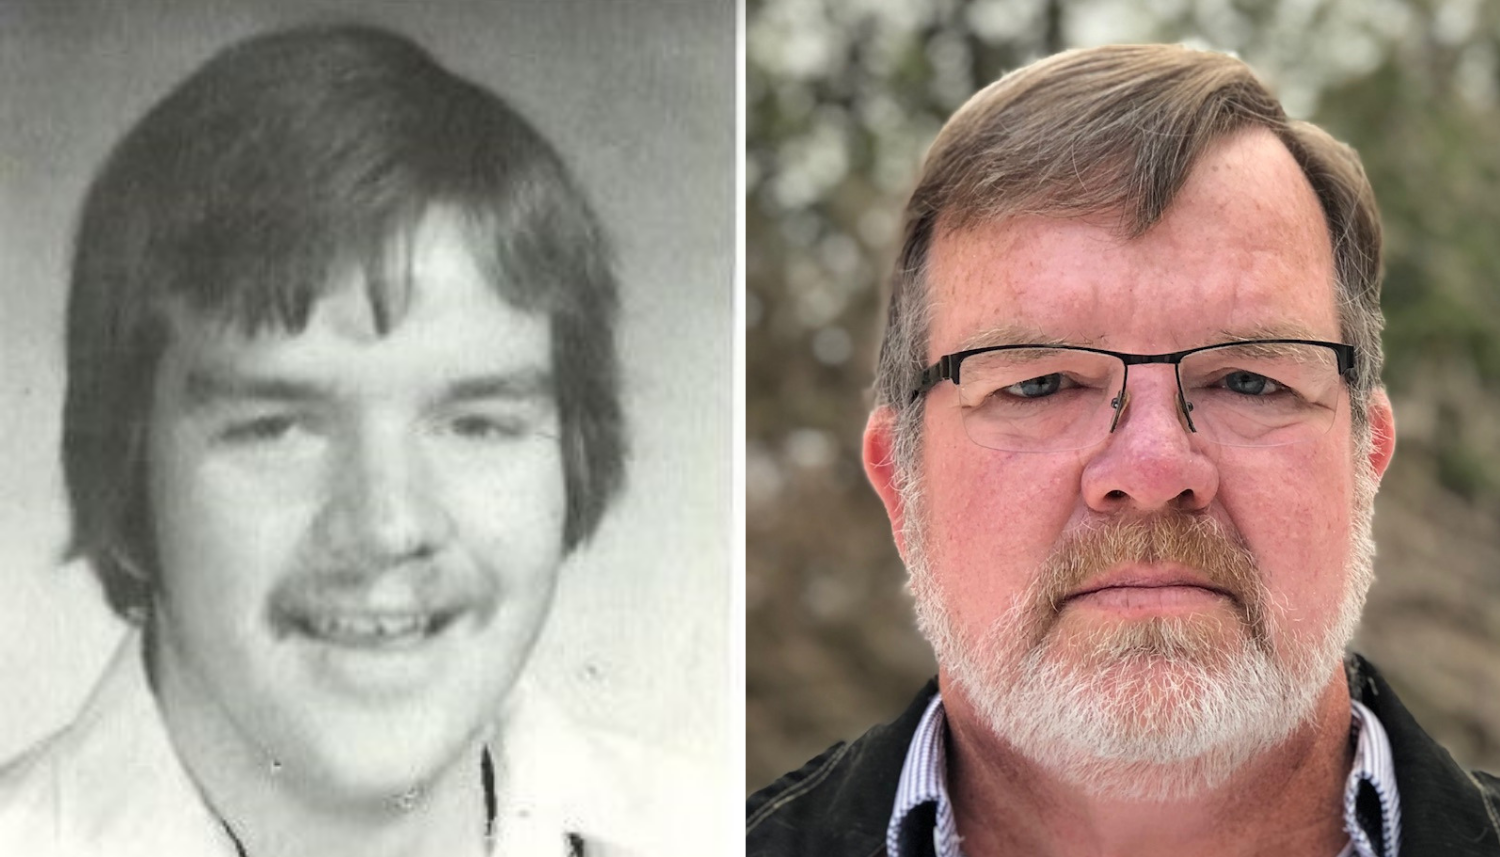 From left, John Myers's yearbook photo from 1979, and Myers in 2018. (Julie Ireton/CBC)